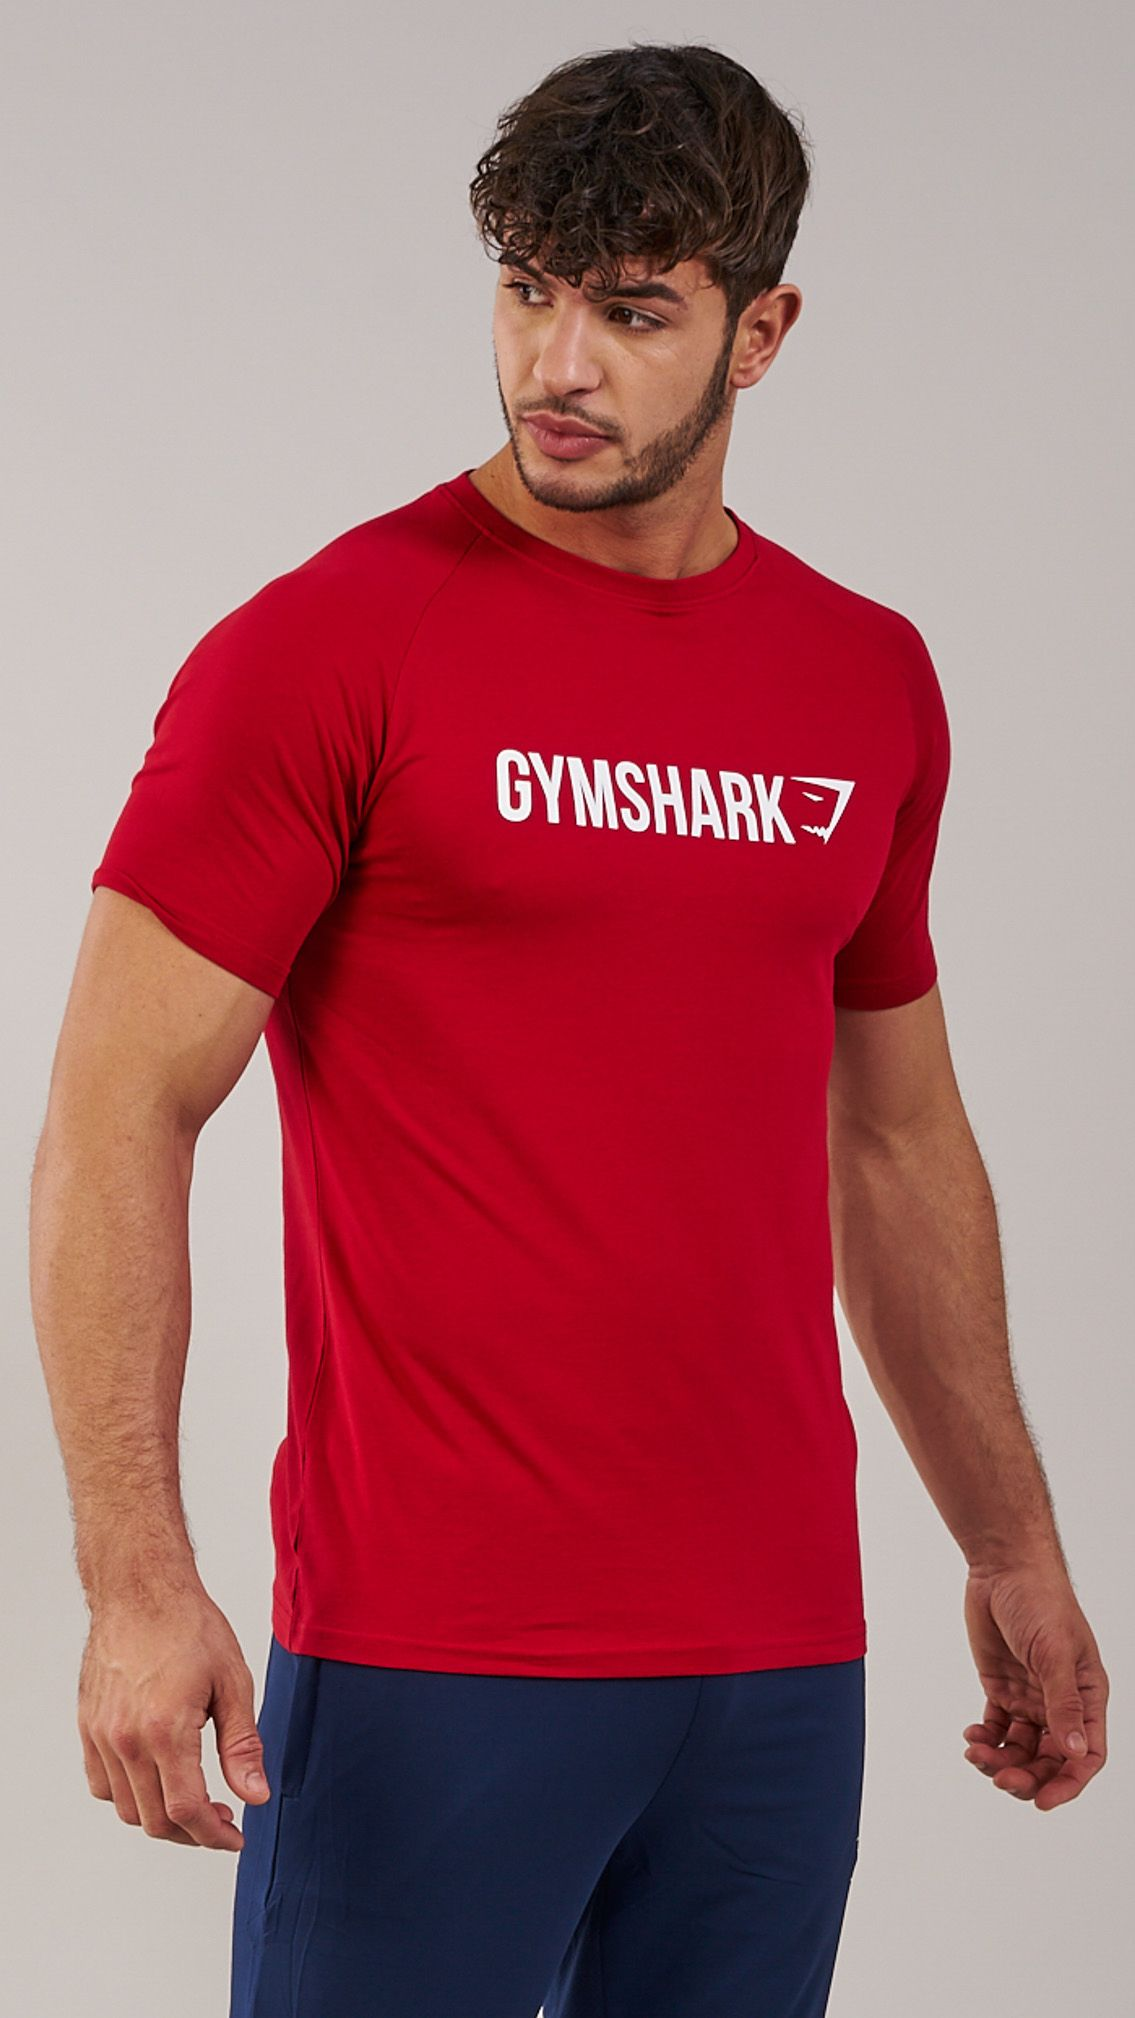 e52a99ed The Gymshark Apollo T-Shirt, with its statement design and improved relaxed  fit,